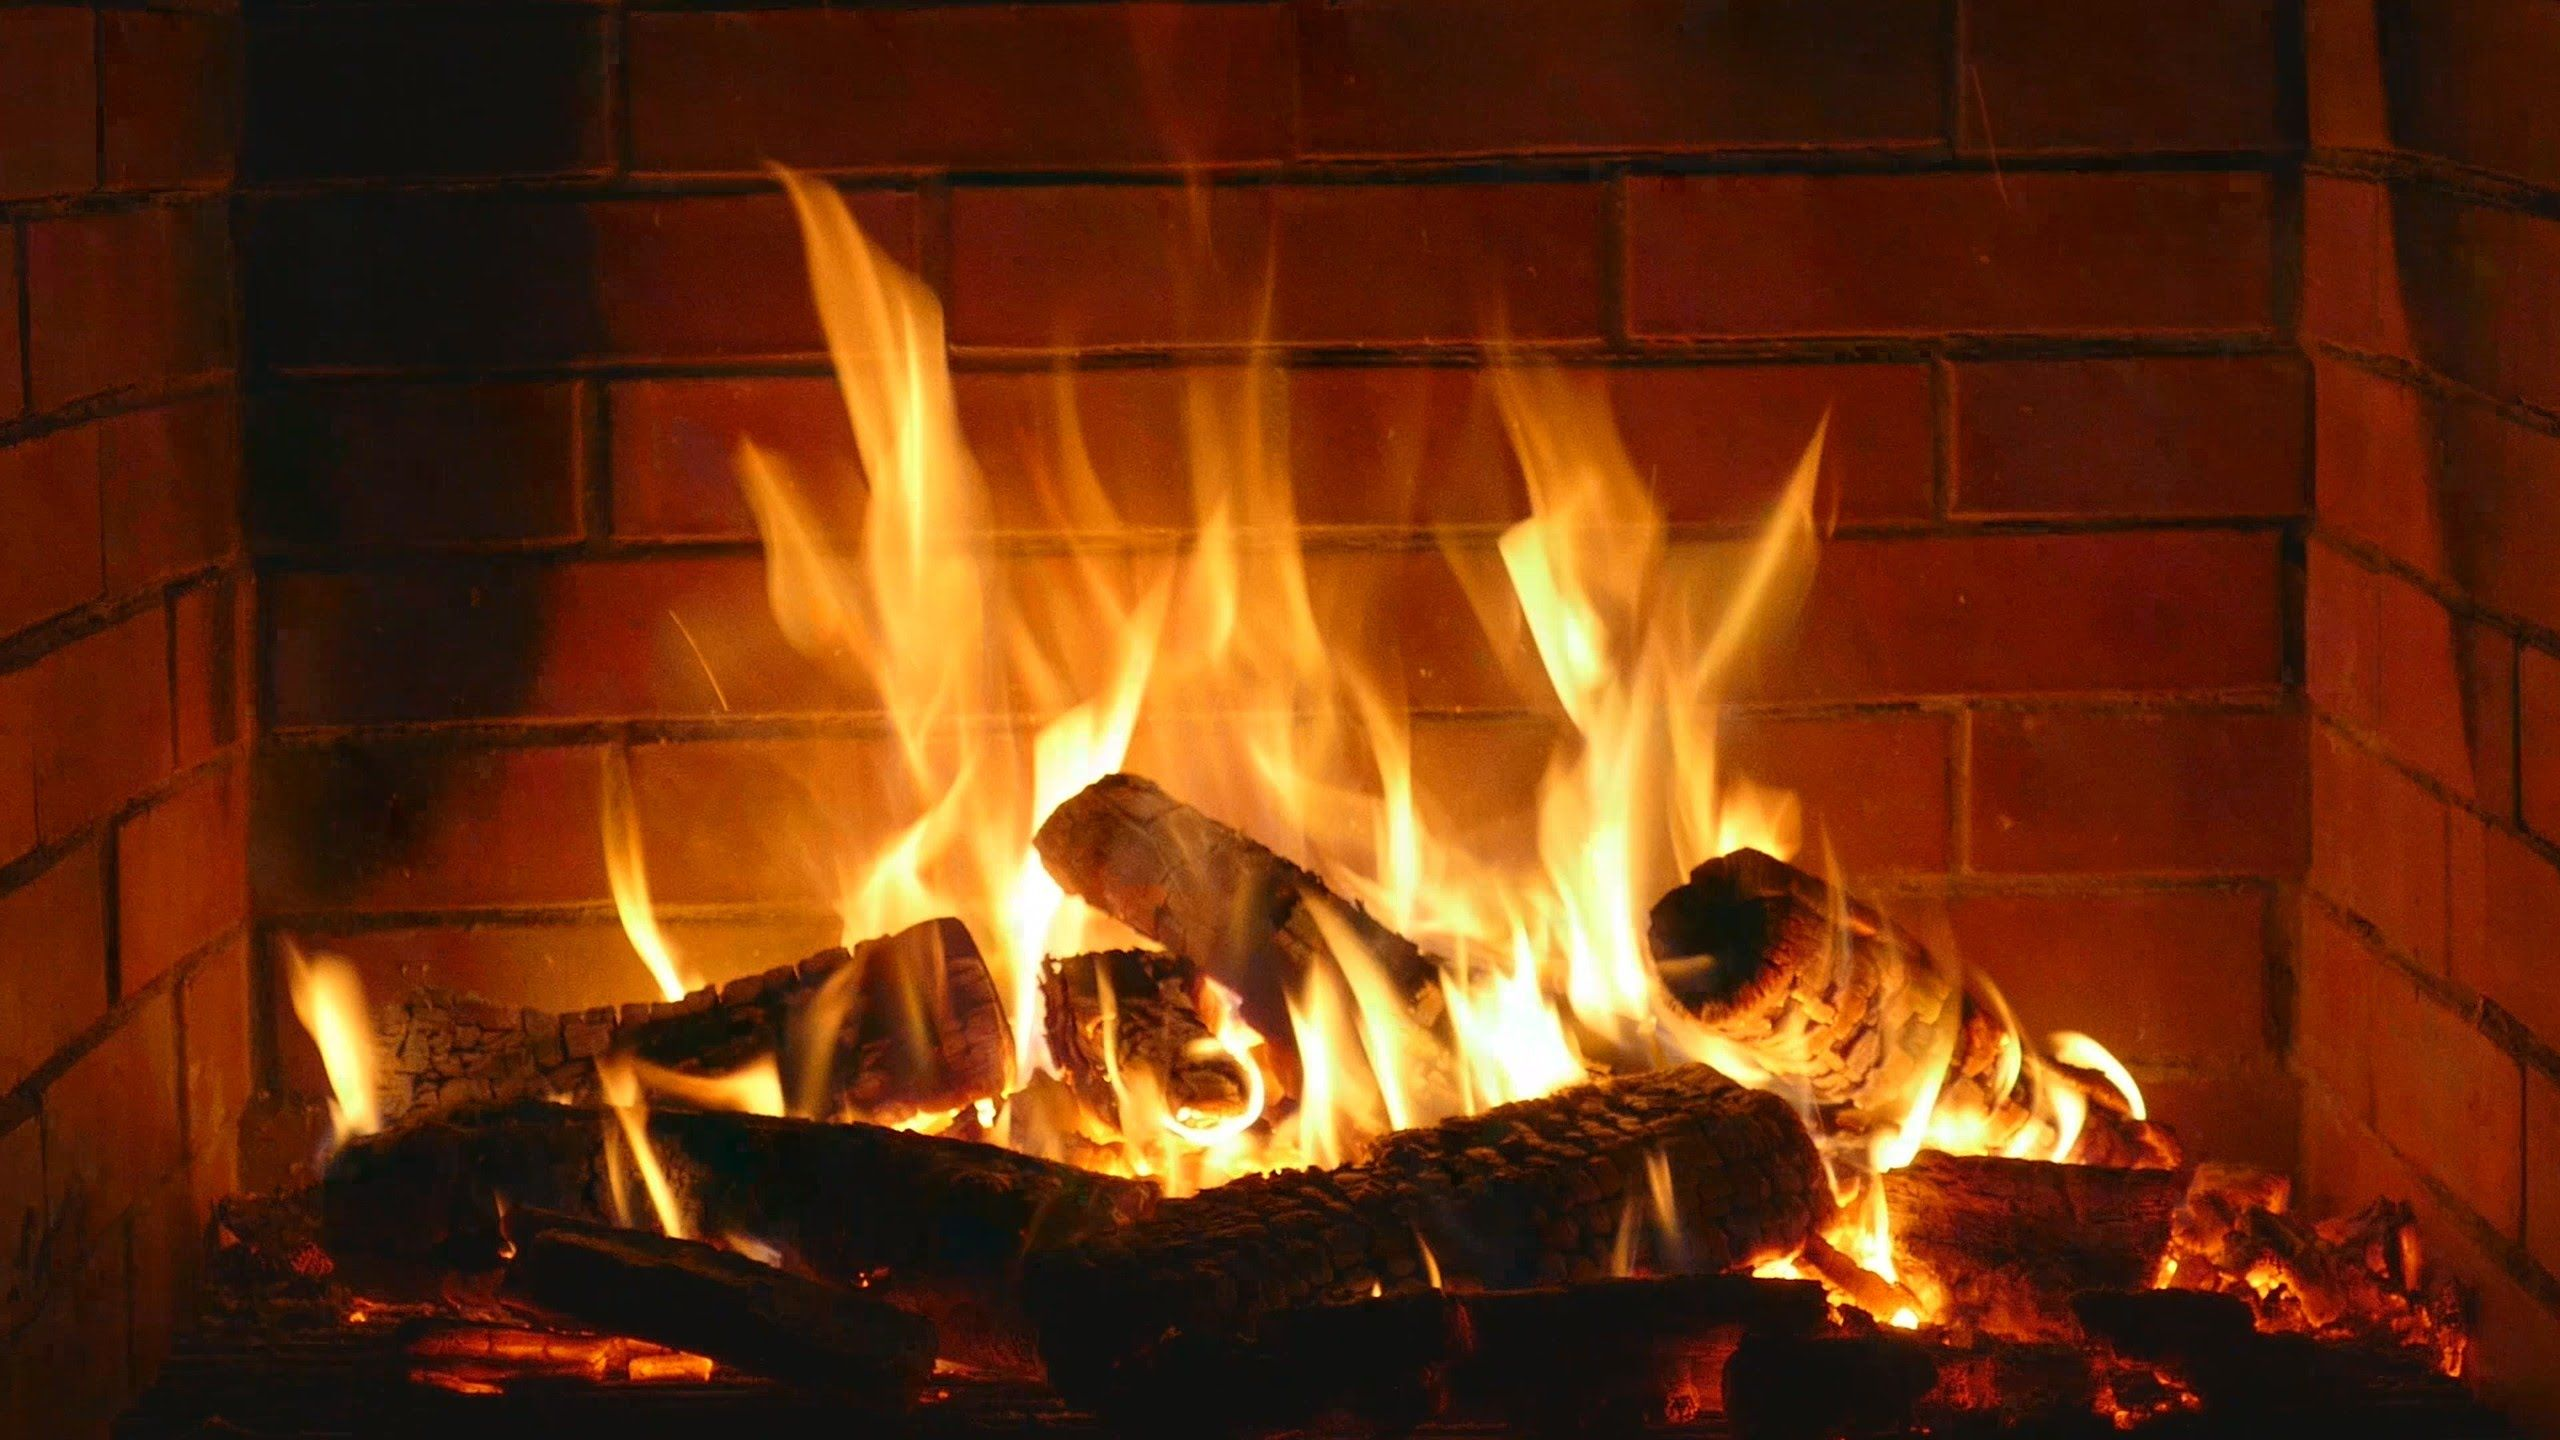 Fireplace - romantic - Full HD and 4K - 2 hours crackling